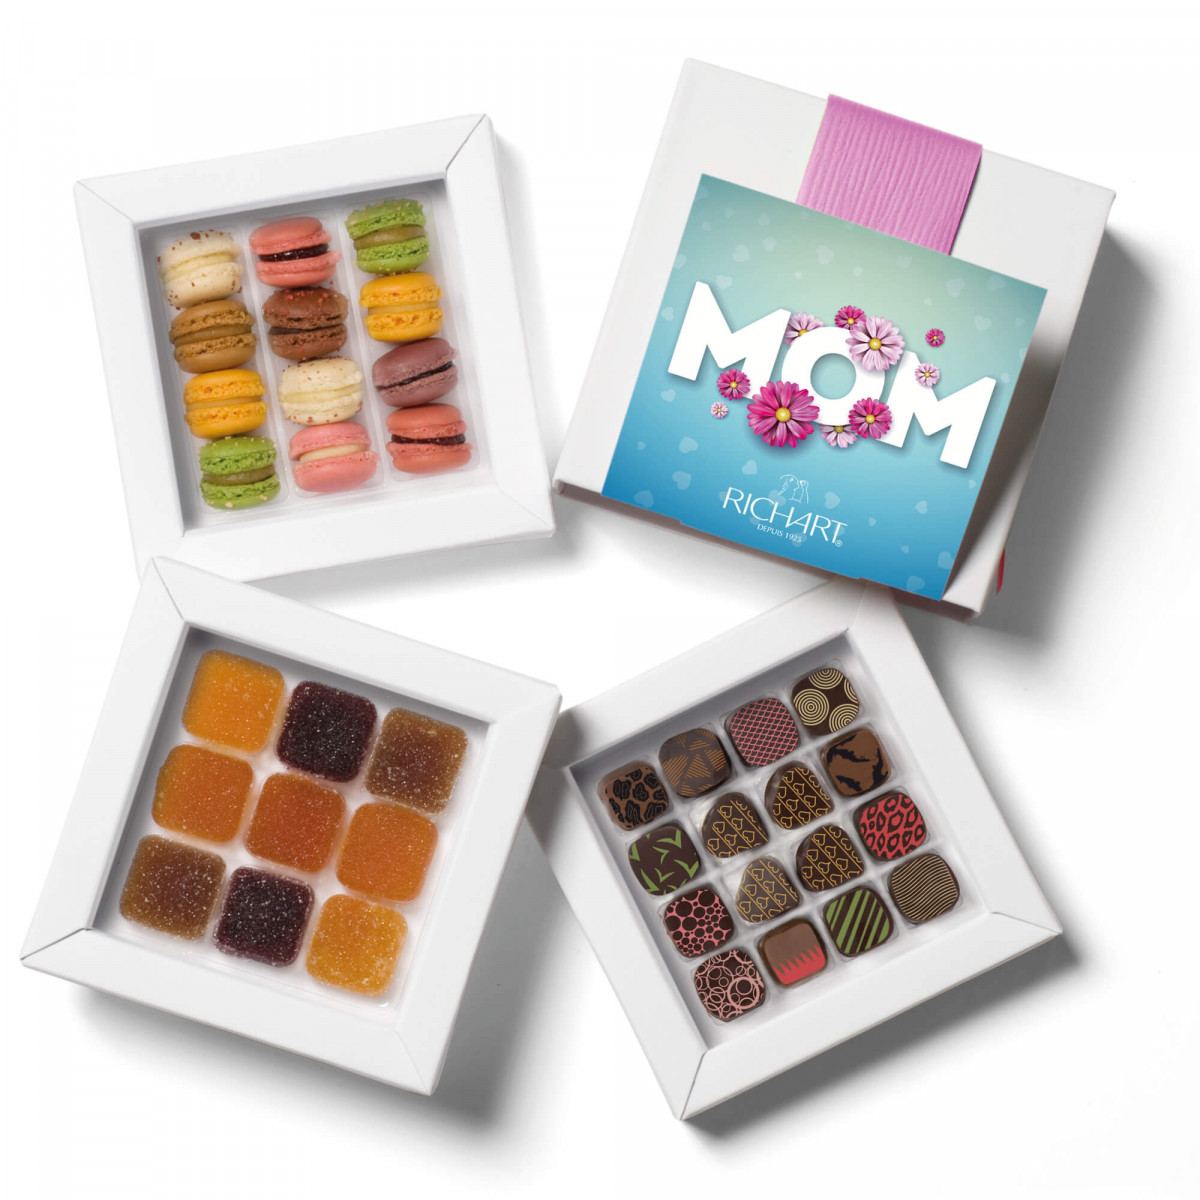 Wondeful Mom:filled chocolates, pates de fruitd and french macarons from Maison RICHART